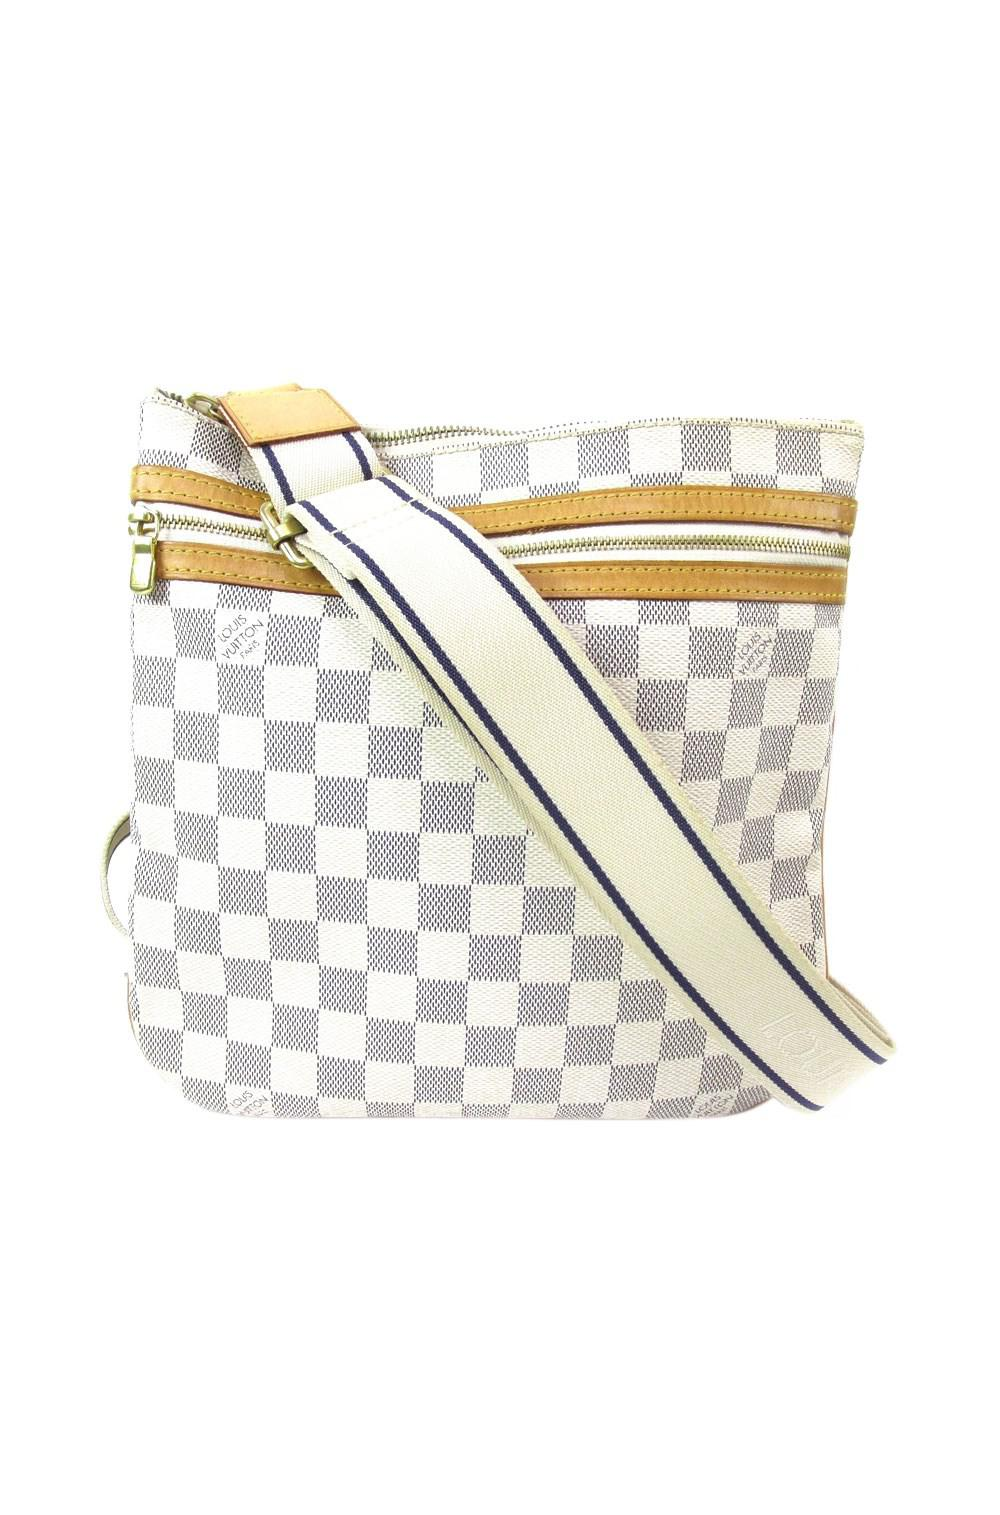 5cd510511b Lyst - Louis Vuitton Auth Damier Azur Canvas Pochette Bosphore ...